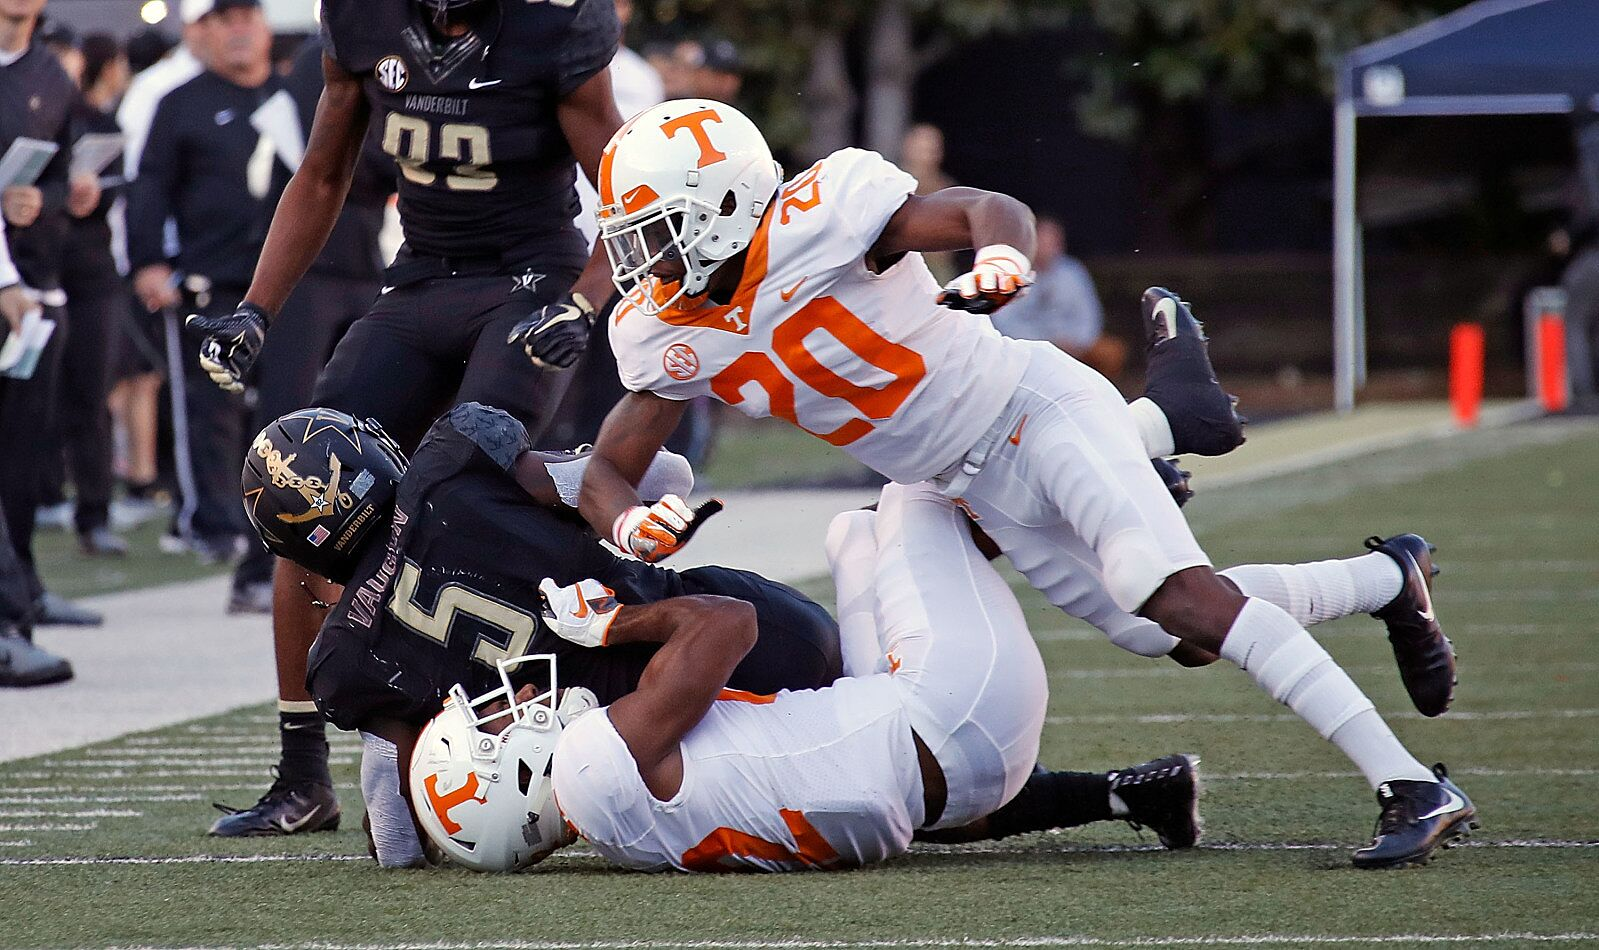 ccfb8835 Tennessee football 2019 preview by position: Vols DBs - Page 2